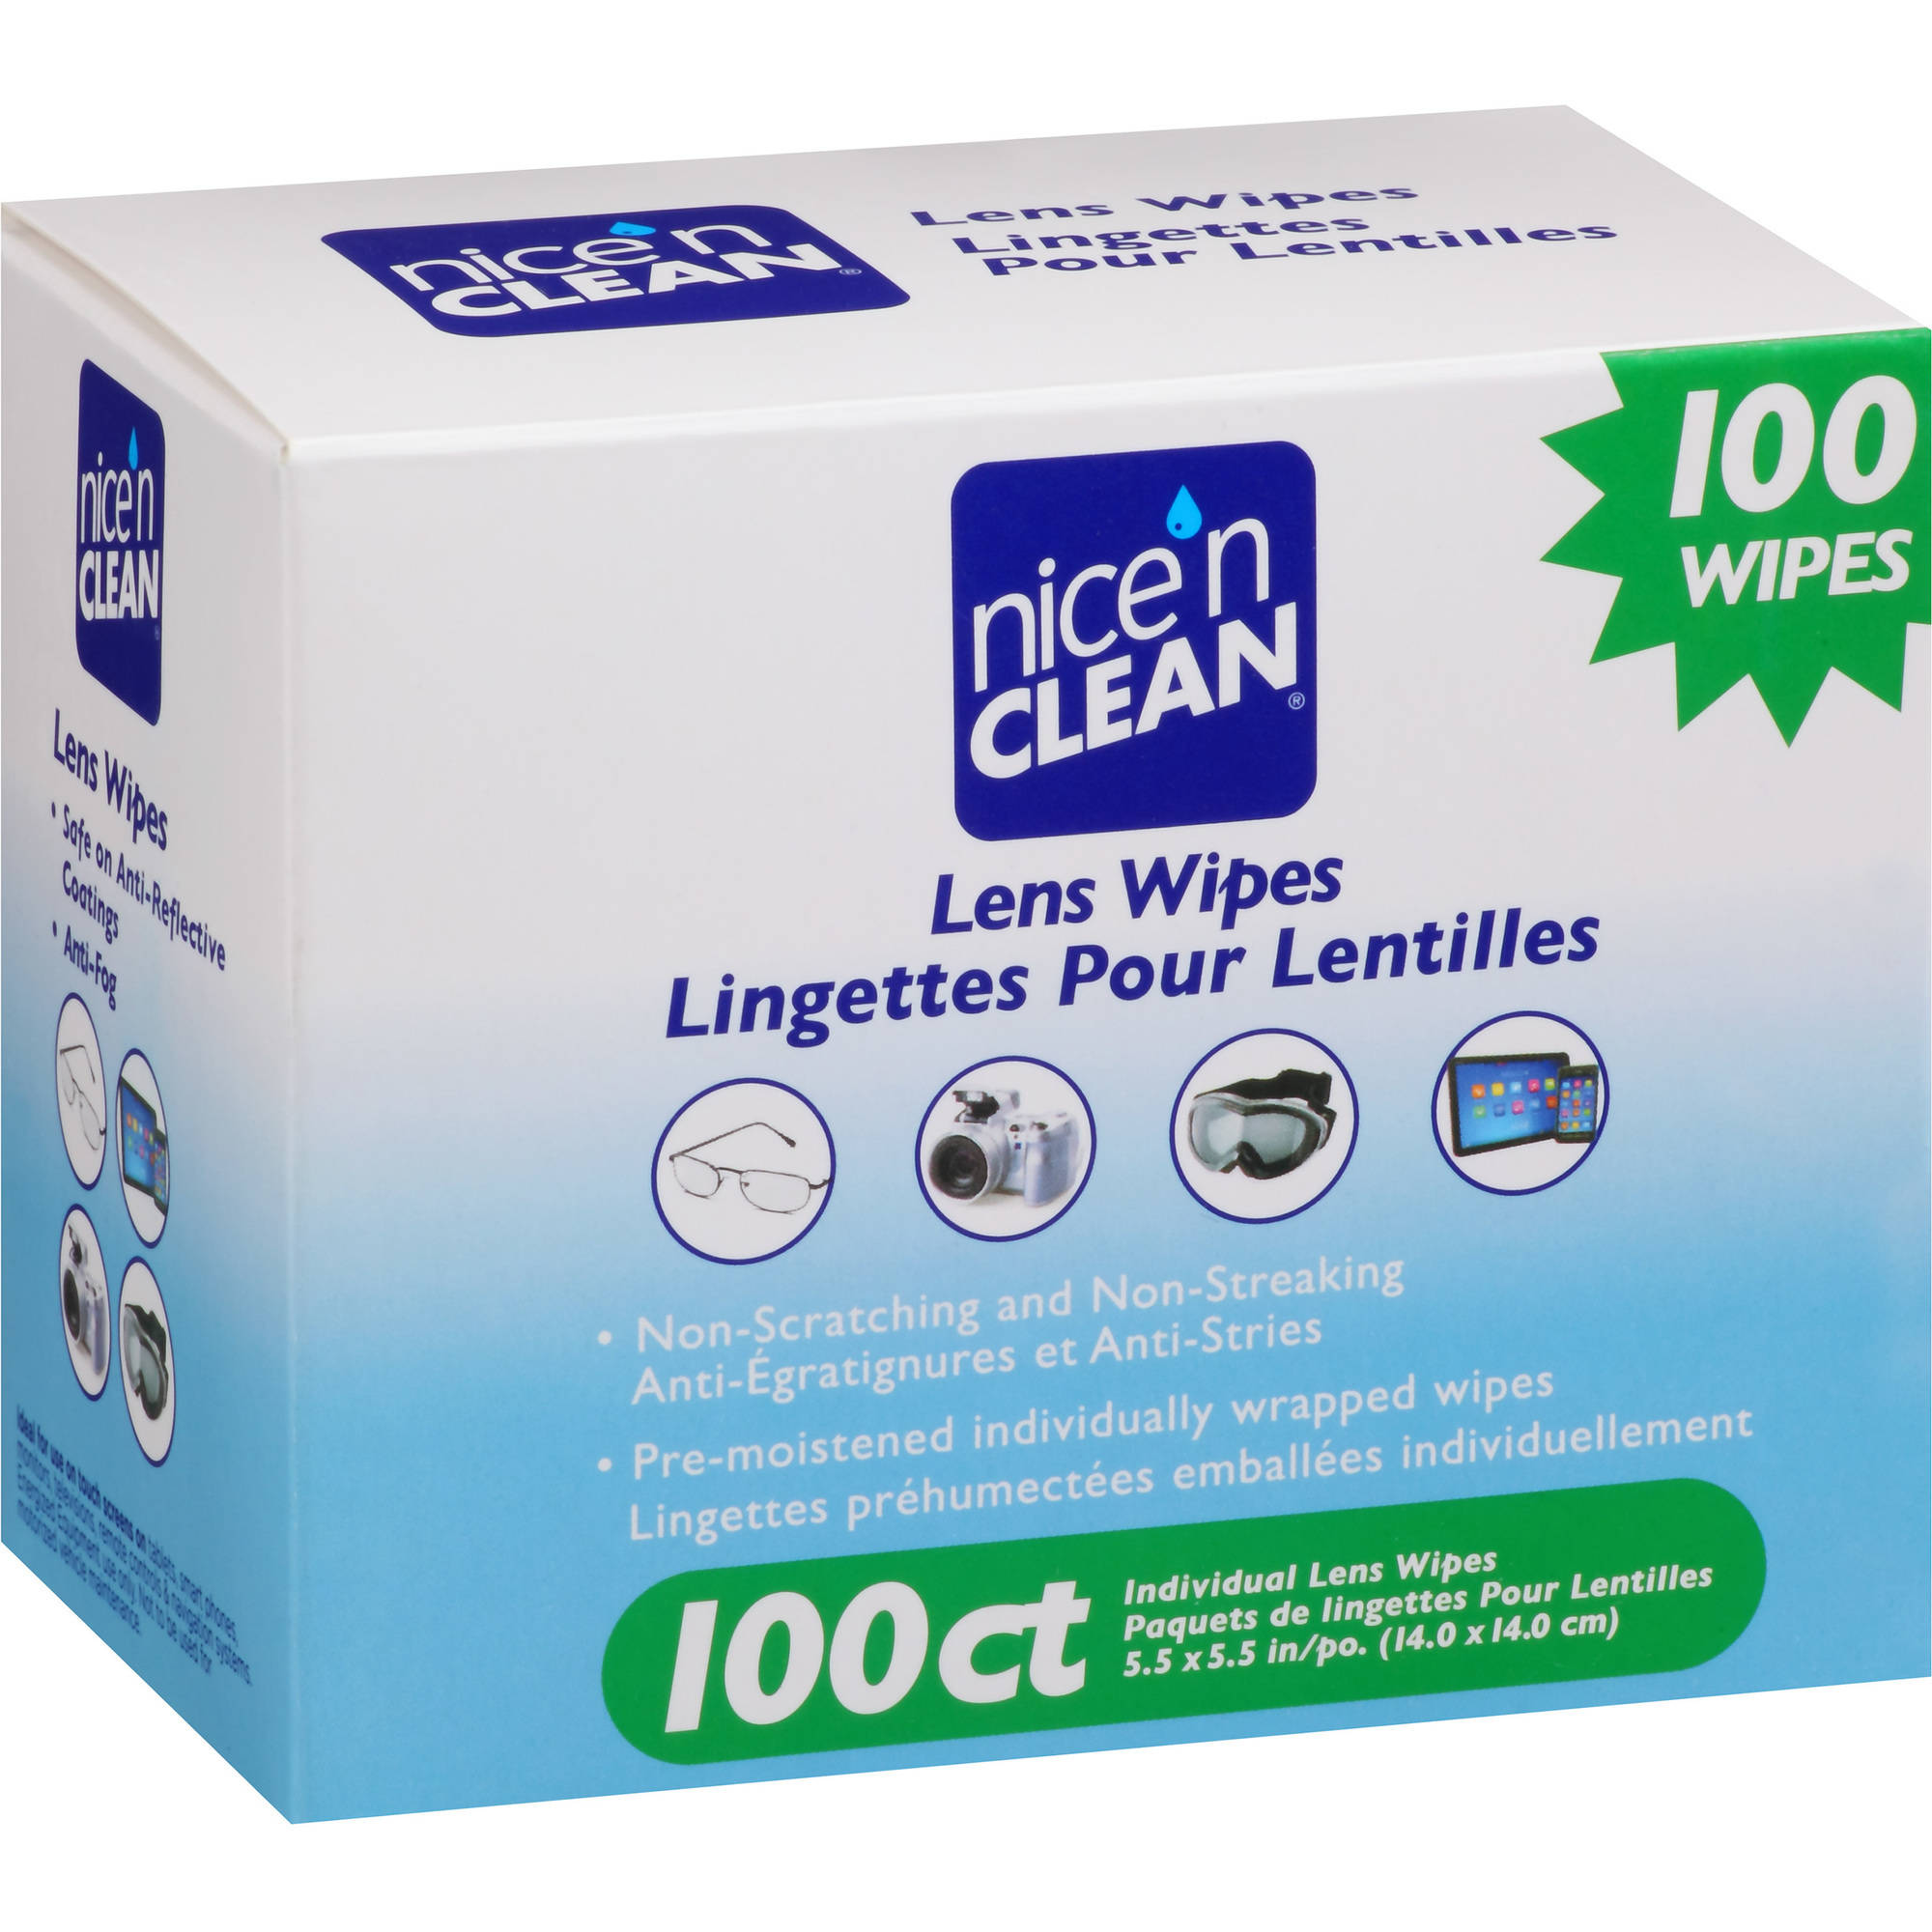 Nice 'N Clean Lens Wipes, 100 count